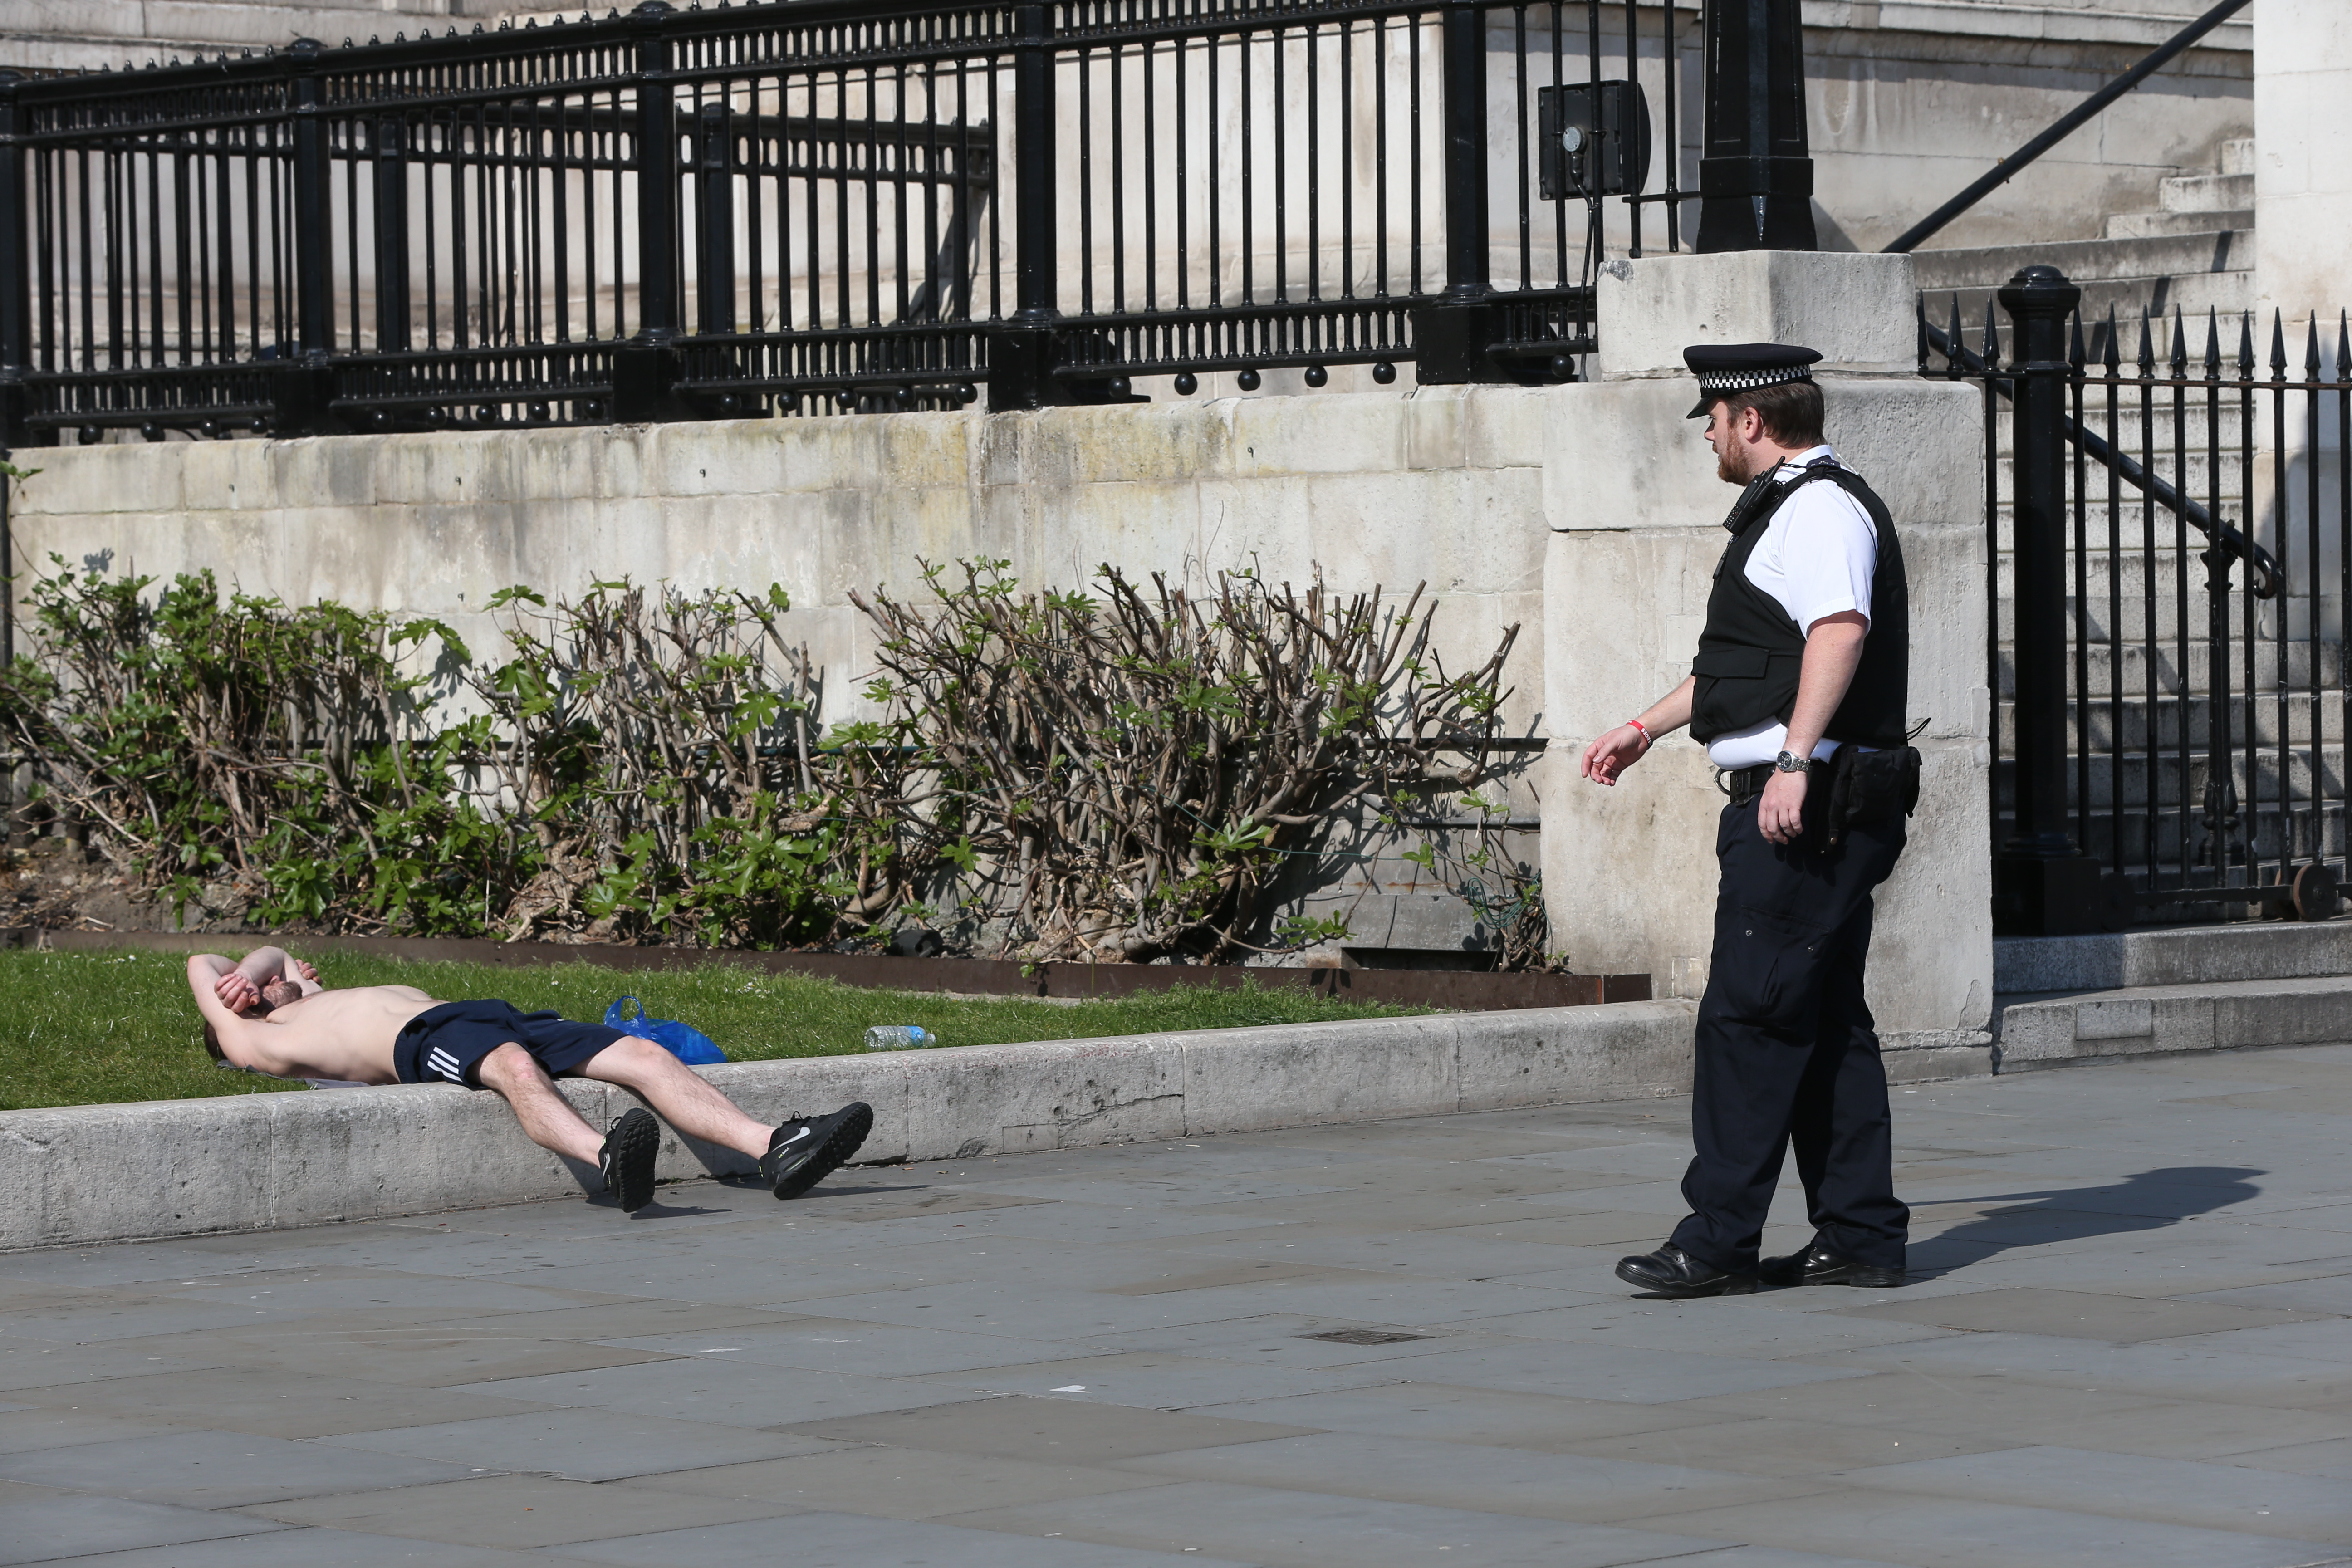 A Metropolitan police officer asks a sunbather to move along in front of the National Gallery in Trafalgar Square, London, as the UK continues in lockdown to help curb the spread of the coronavirus.